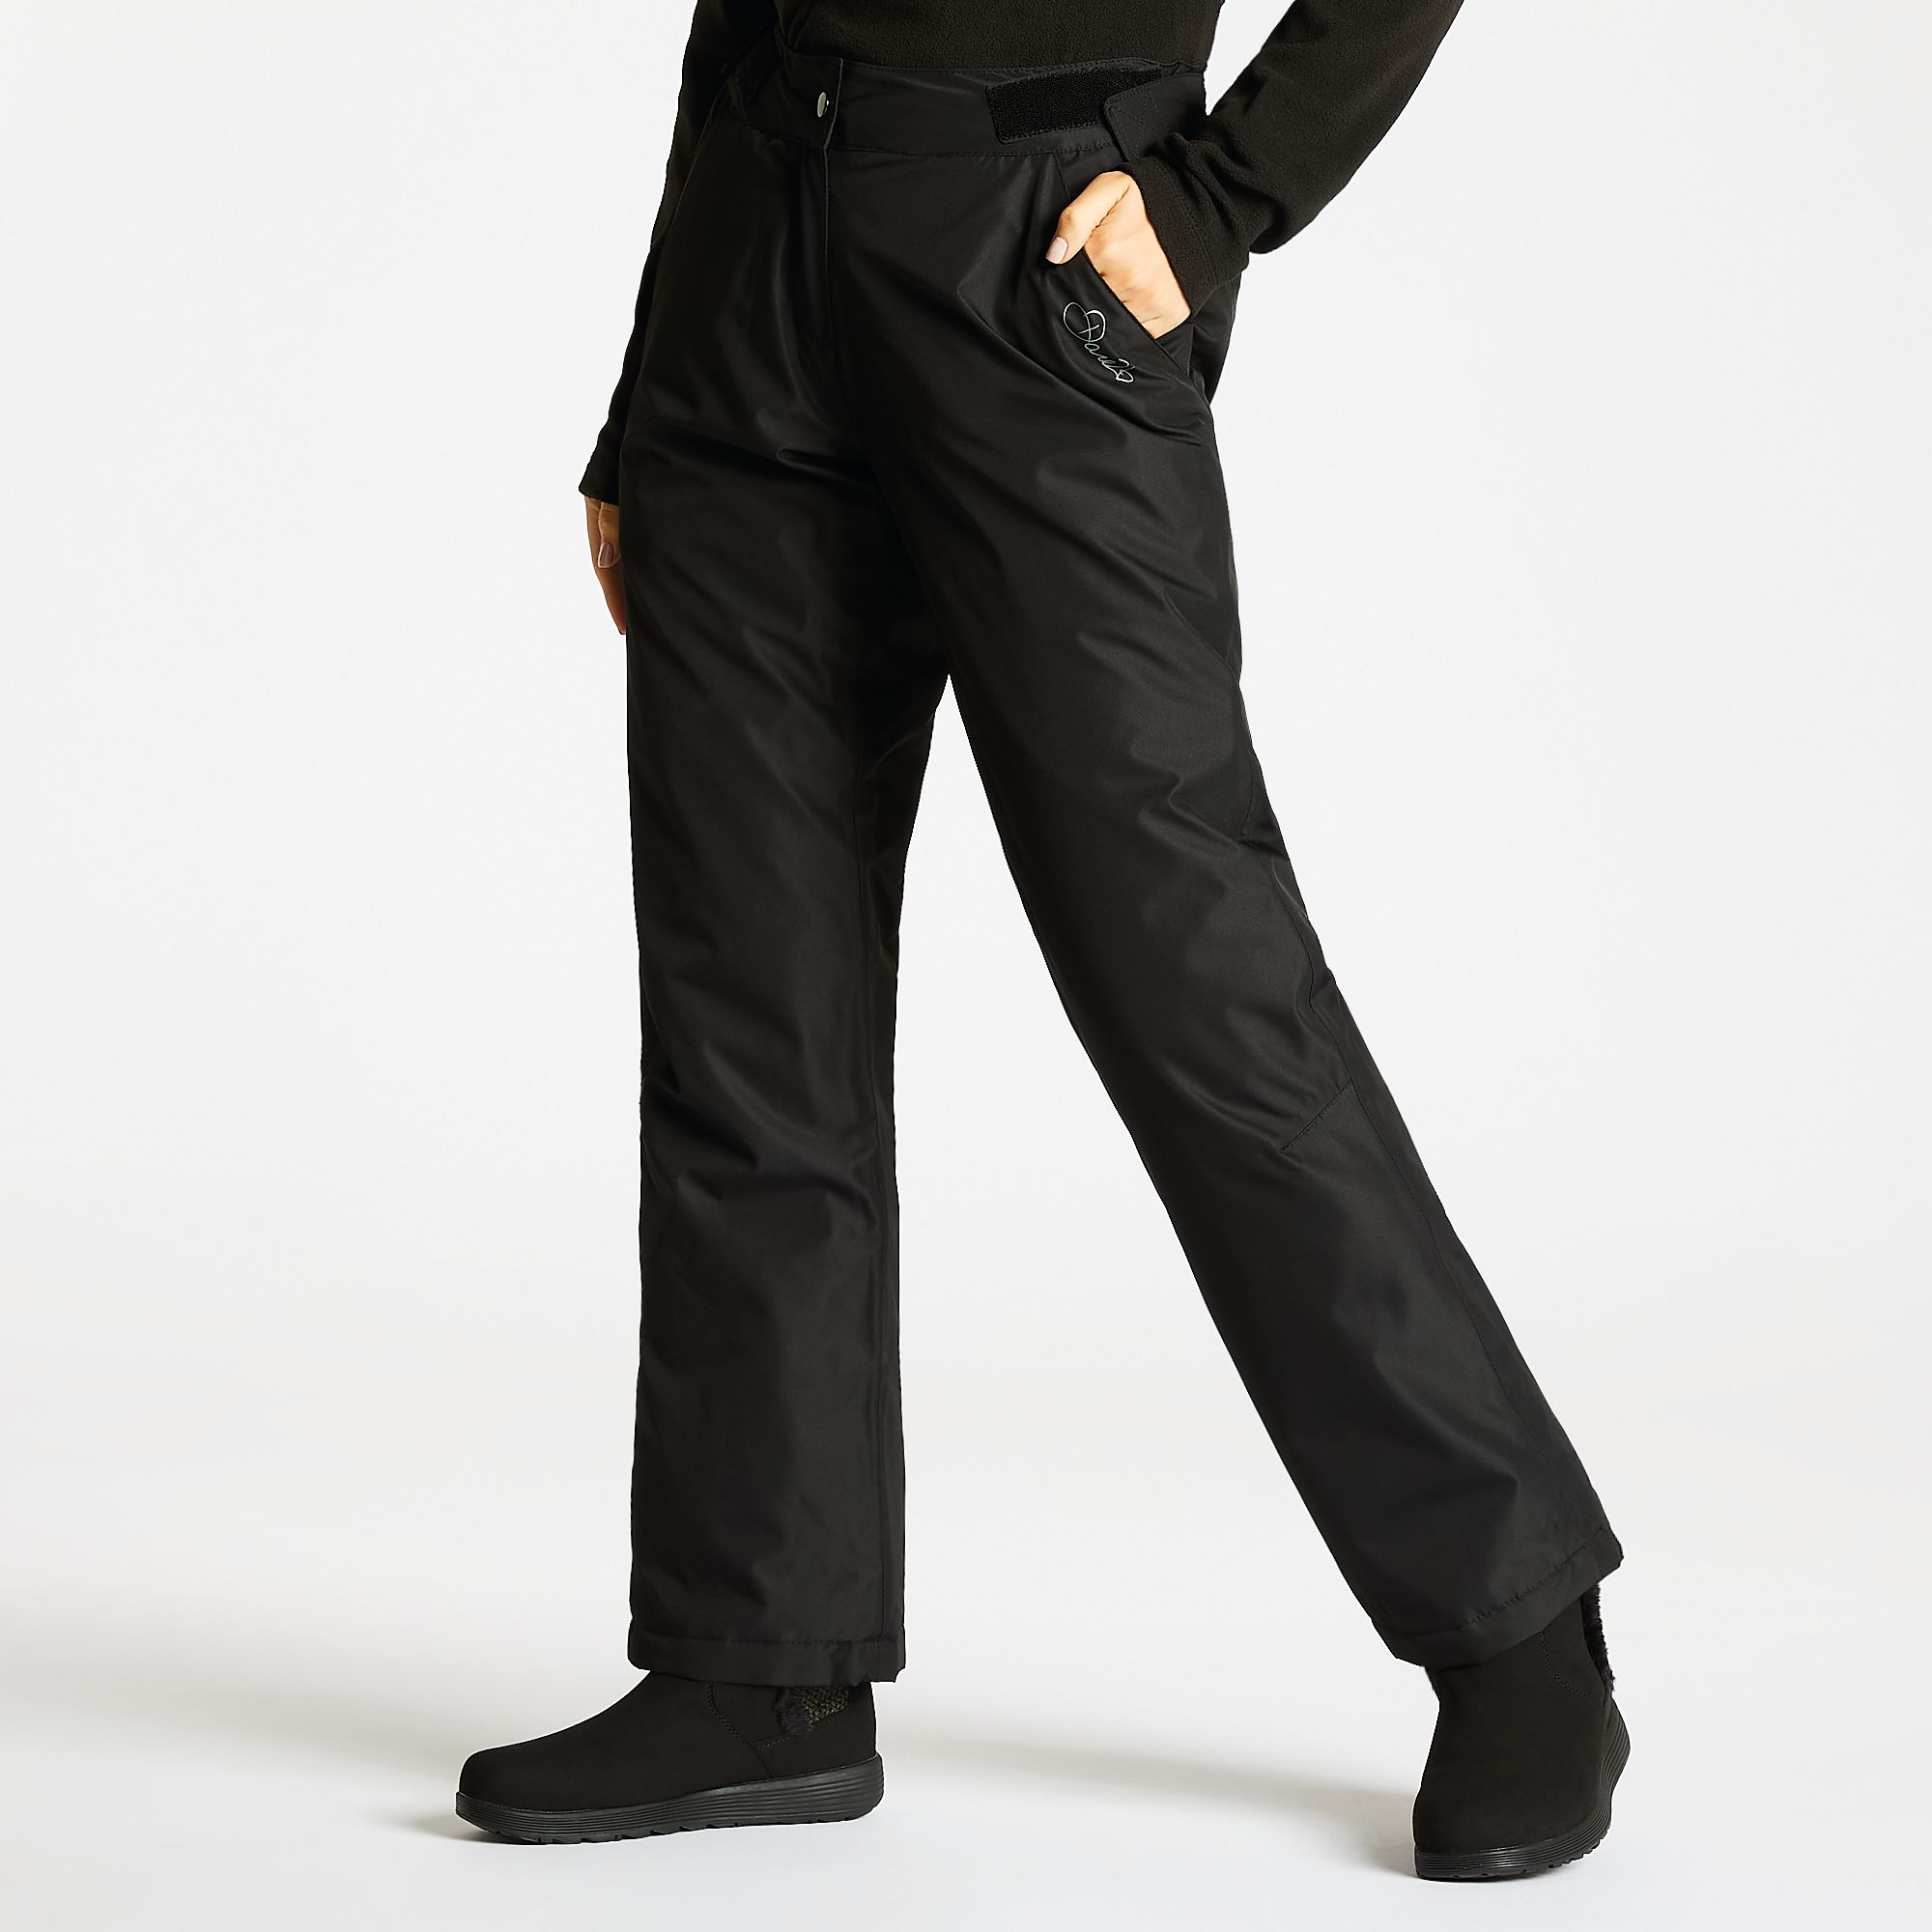 afd354c1d4 Women s 8 Piece Ski Pack. Add to Saved Items. Trousers available in